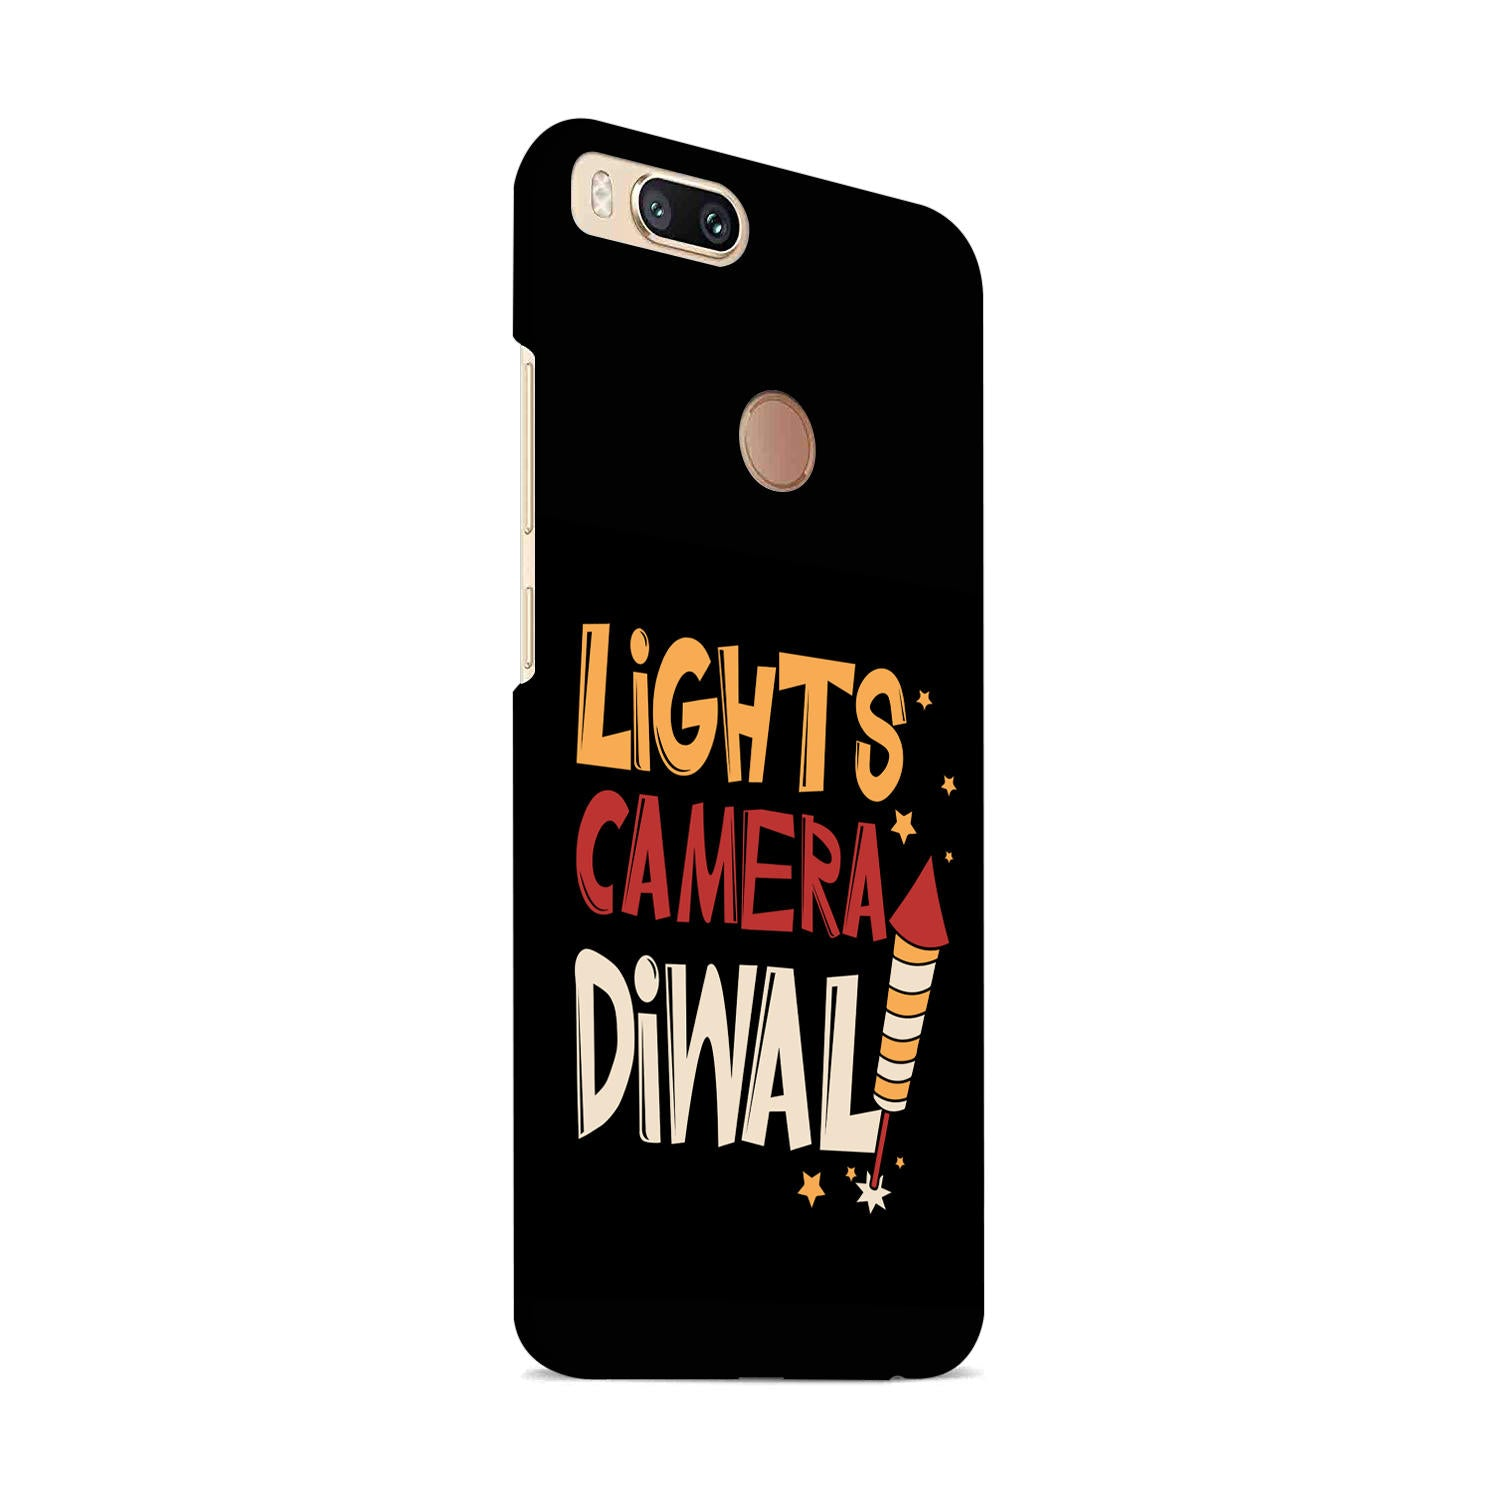 Lights Camera Diwali Enjoy Festival Of Light OnePlus 5T Mobile Cover Case - MADANYU